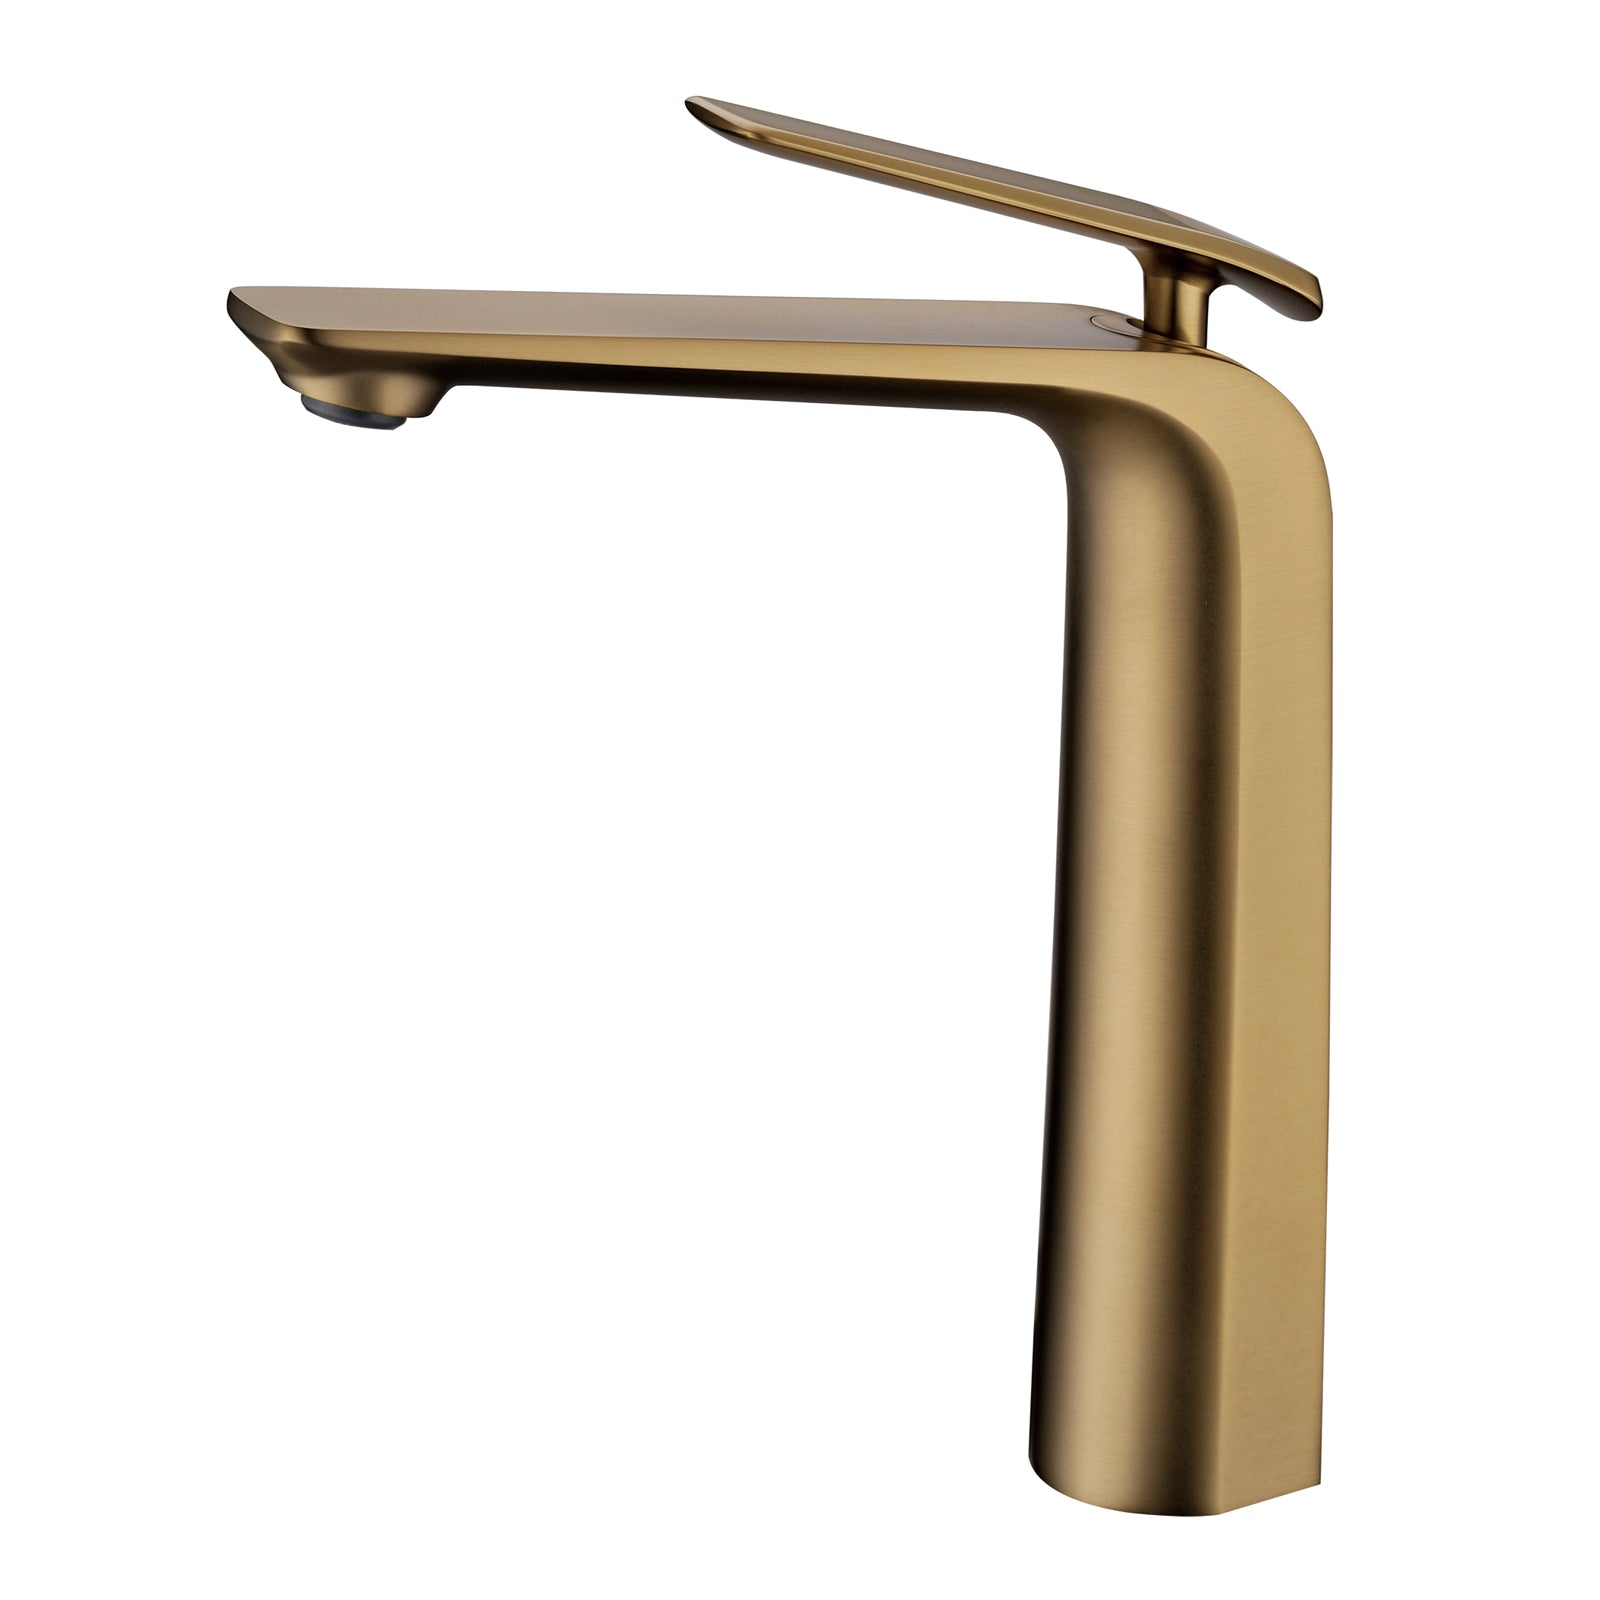 Norico Esperia Brushed Yellow Gold Tall Basin Mixer